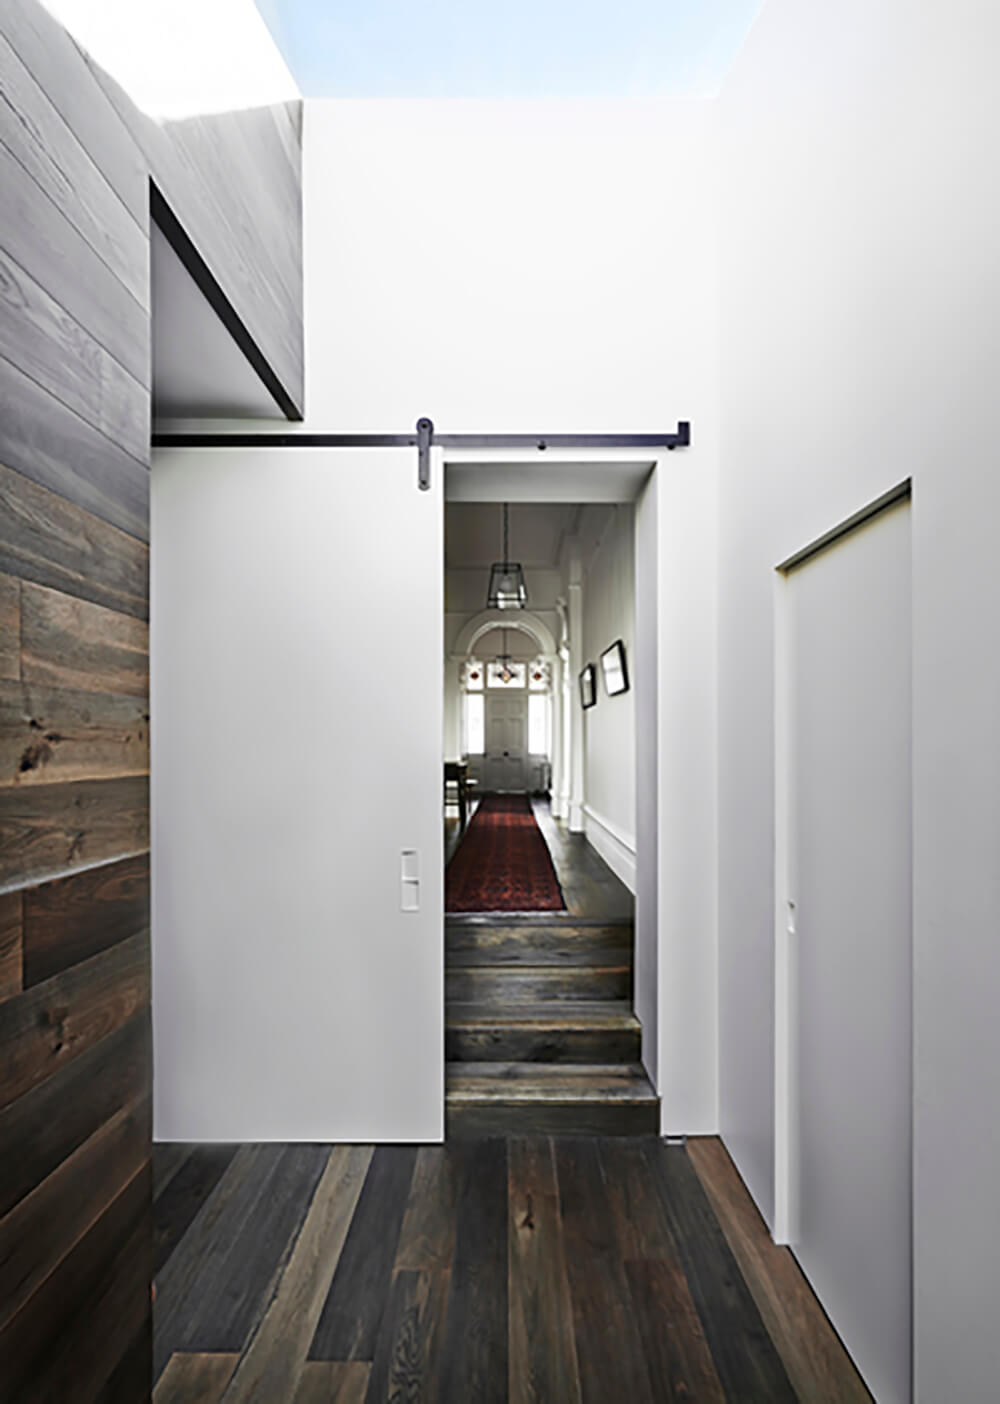 Moving down the hall toward the more private areas of the home, we see extensive natural wood flooring, contrasting with the white walls. A sliding door blocks off this space for social gatherings.